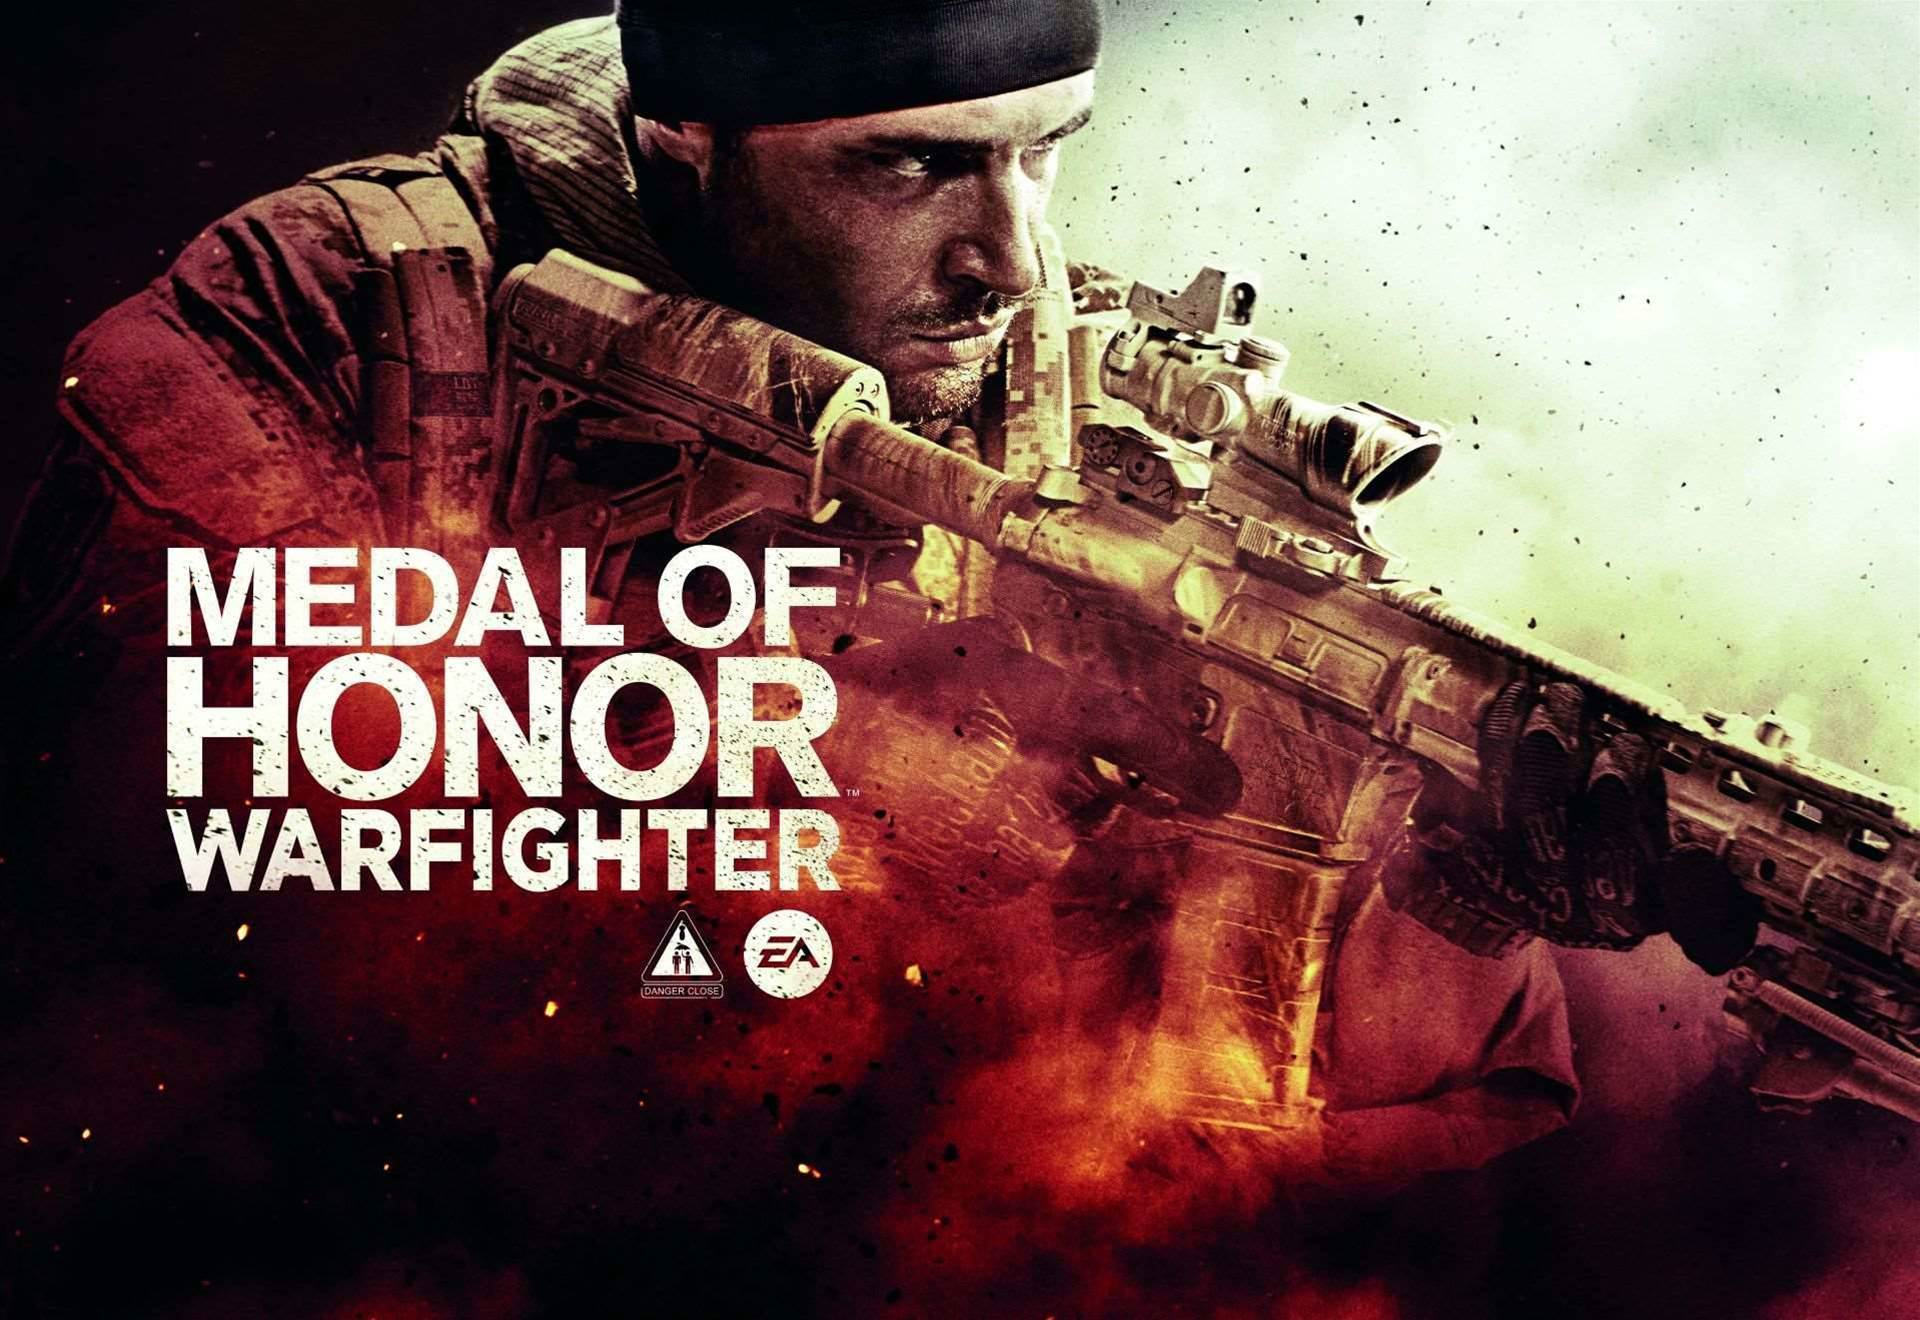 Medal of Honor: Warfighter beta coming... to Xbox!